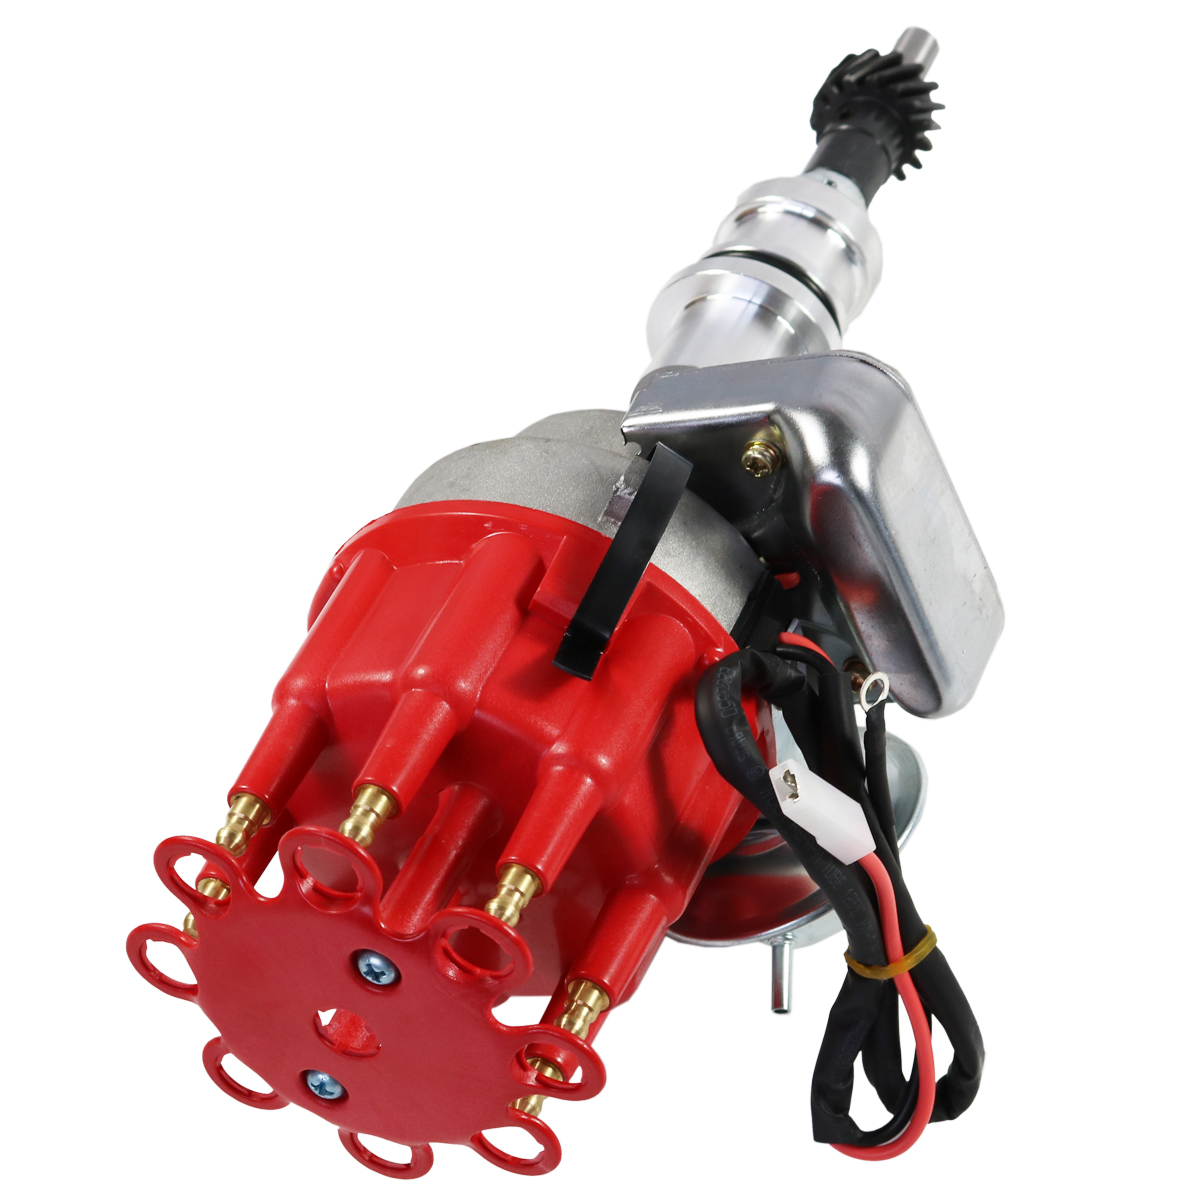 SBF Ford Small Block 289 302 R2R Distributor With Red Cap Ready 2 Run